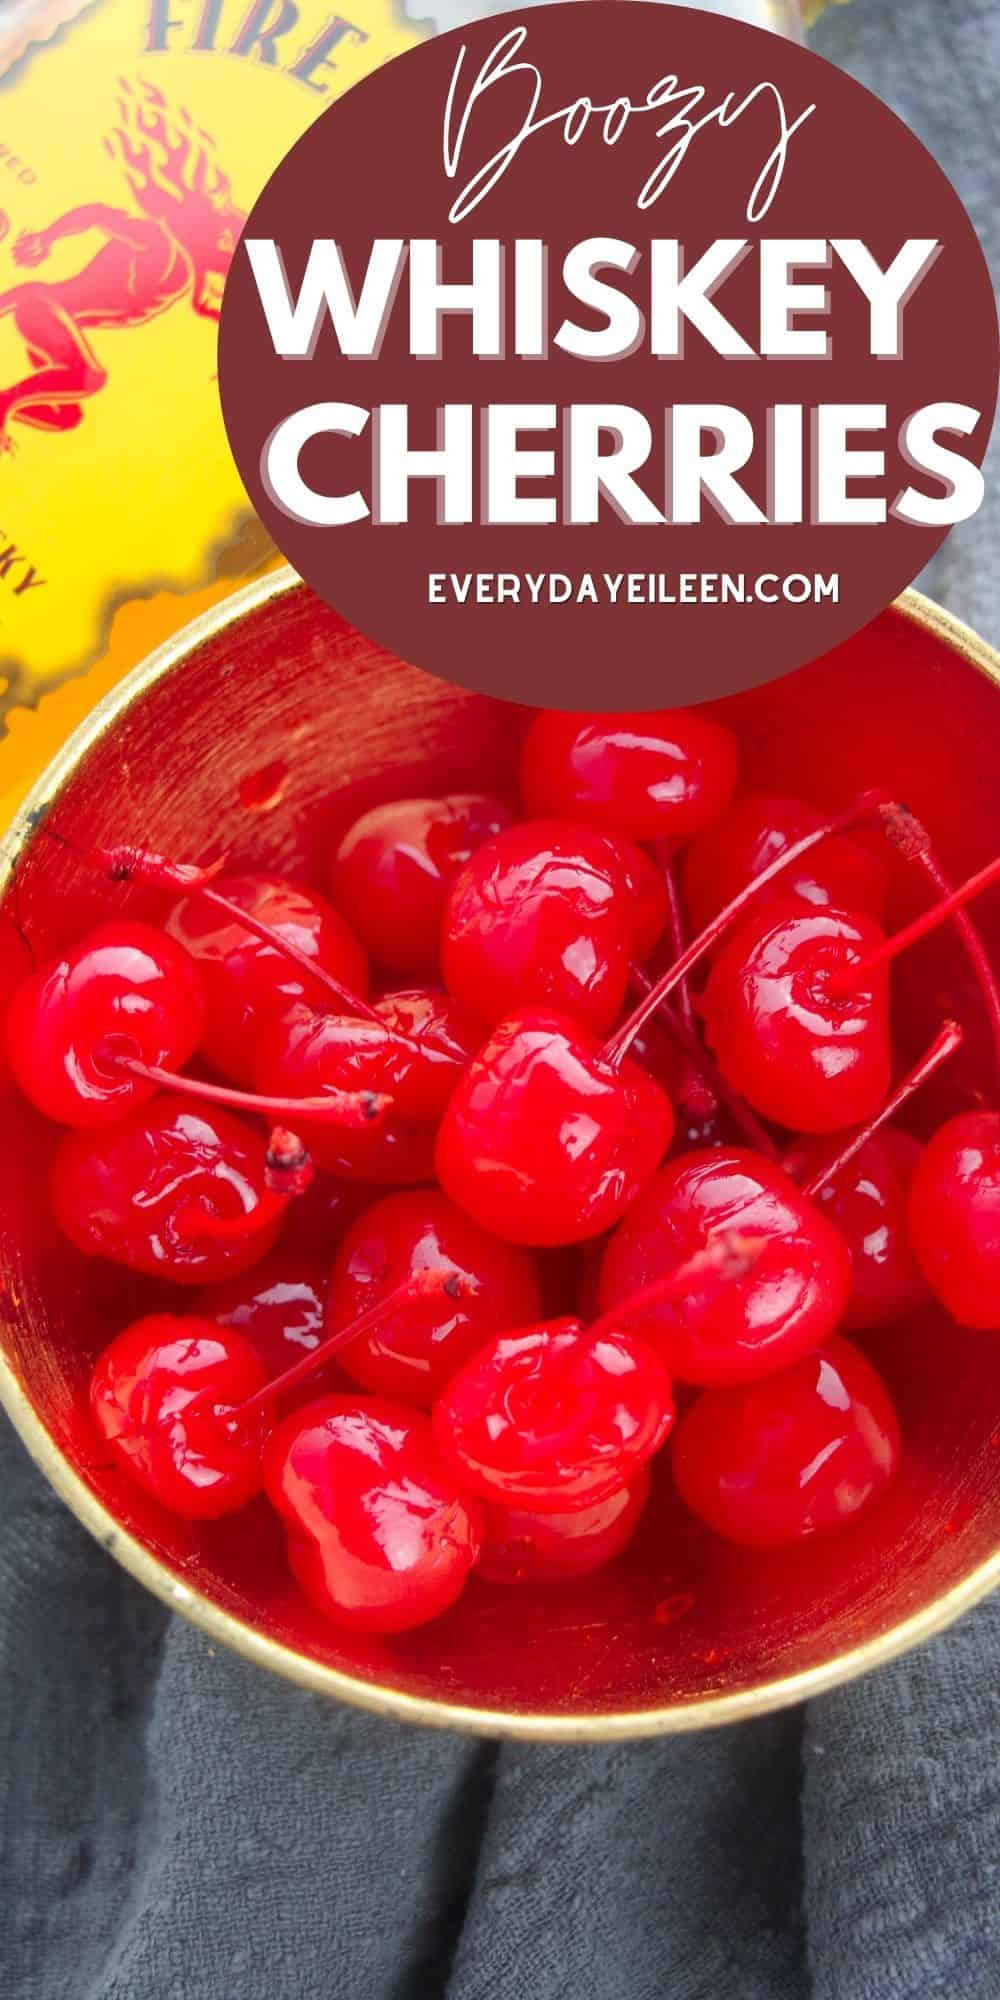 Maraschino Cherries infused with Cinnamon Whiskey are a fabulous treat. Great for the adults at parties or drink garnishes. A wonderful gift for family and friends. #boozycherries #drunkencherries #everydayeileen #foodgifts  via @everydayeileen